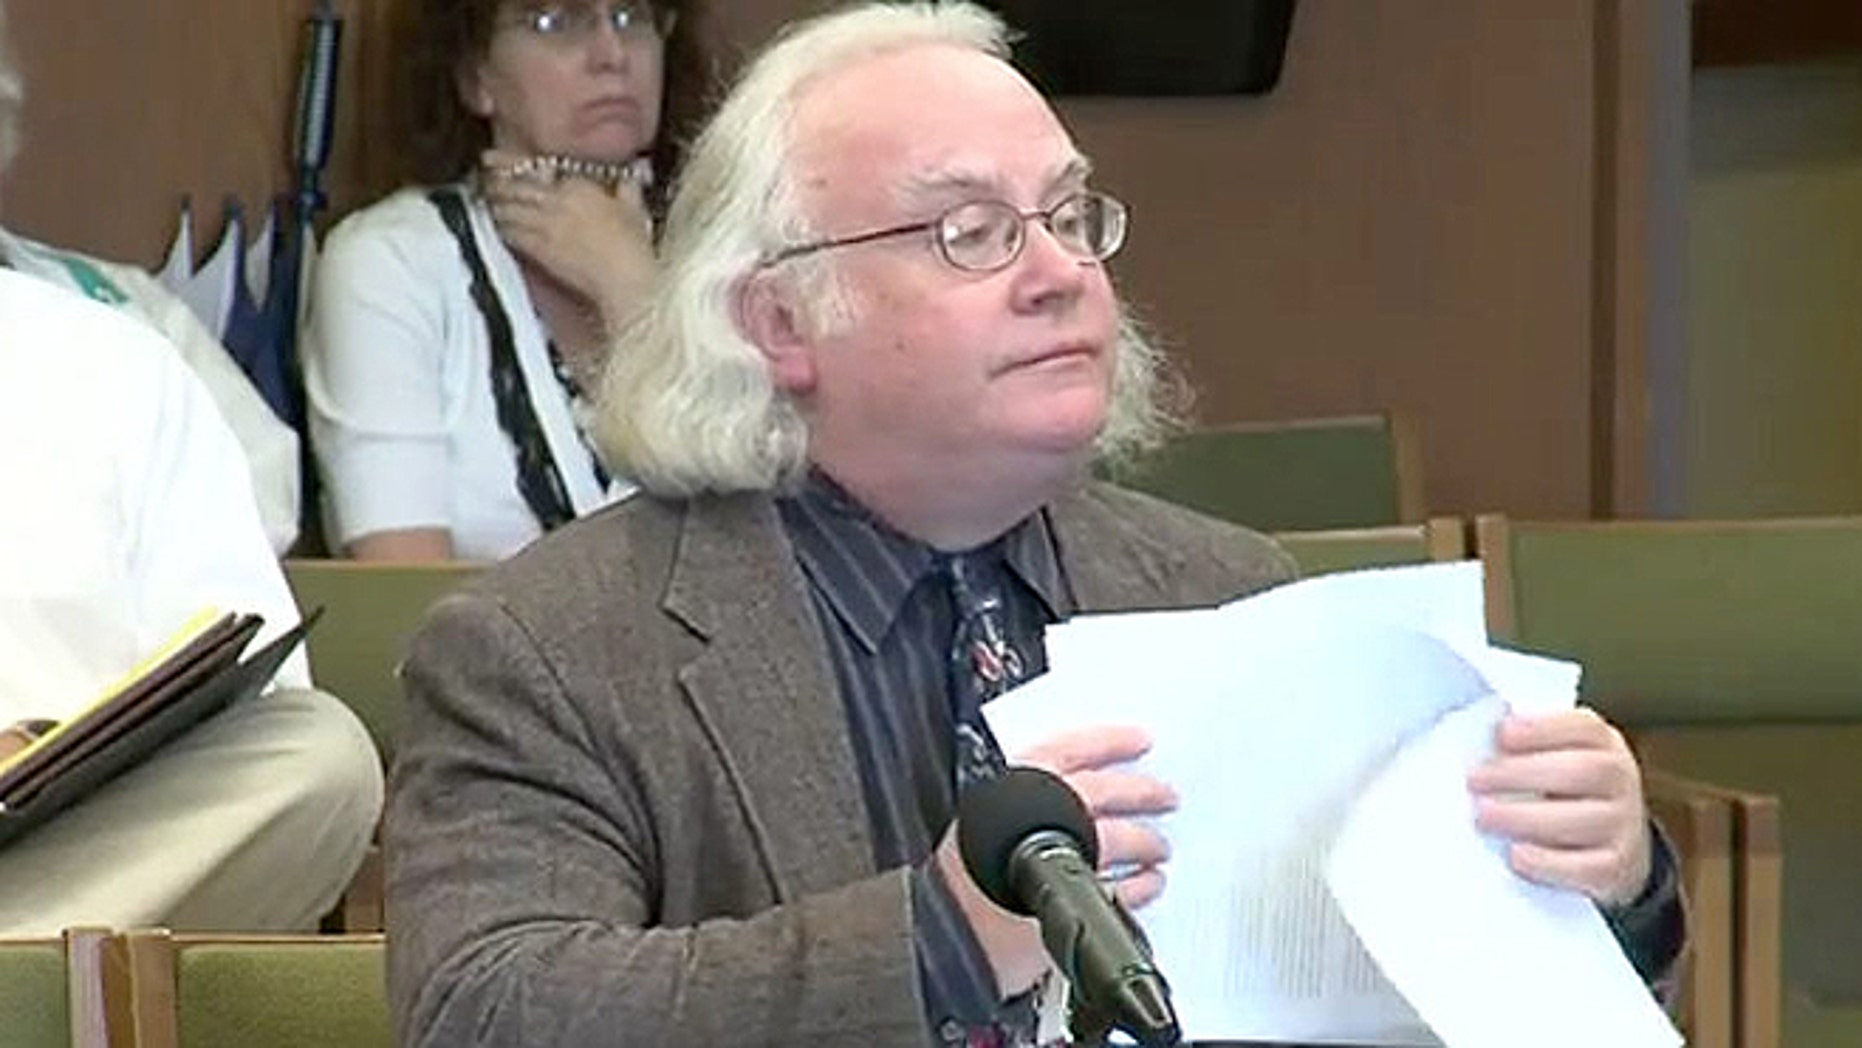 New Hampshire State Rep Timothy Horrigan is against any restrictions on spending with EBT cards, even on guns.